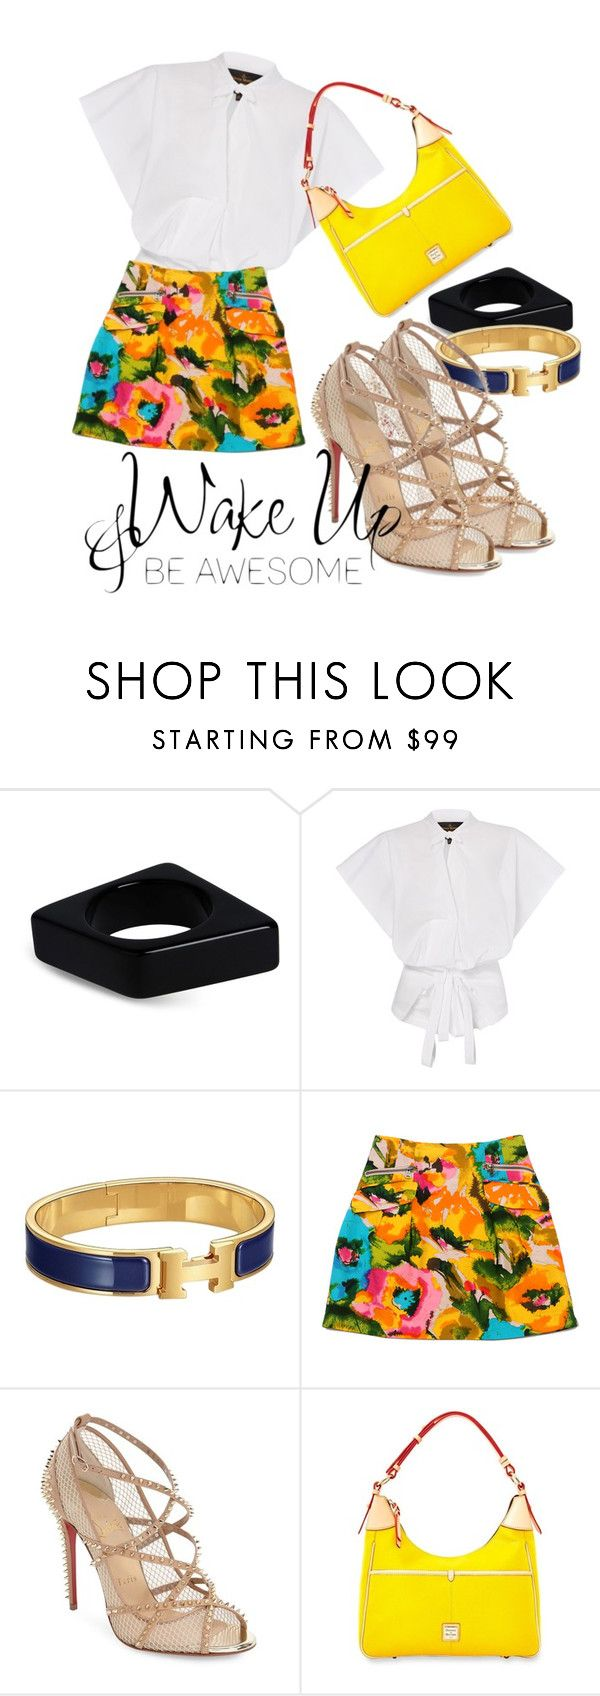 """""""yellow me"""" by omahtawon ❤ liked on Polyvore featuring Marni, Hermès, Nanette Lepore, Christian Louboutin and Dooney & Bourke"""